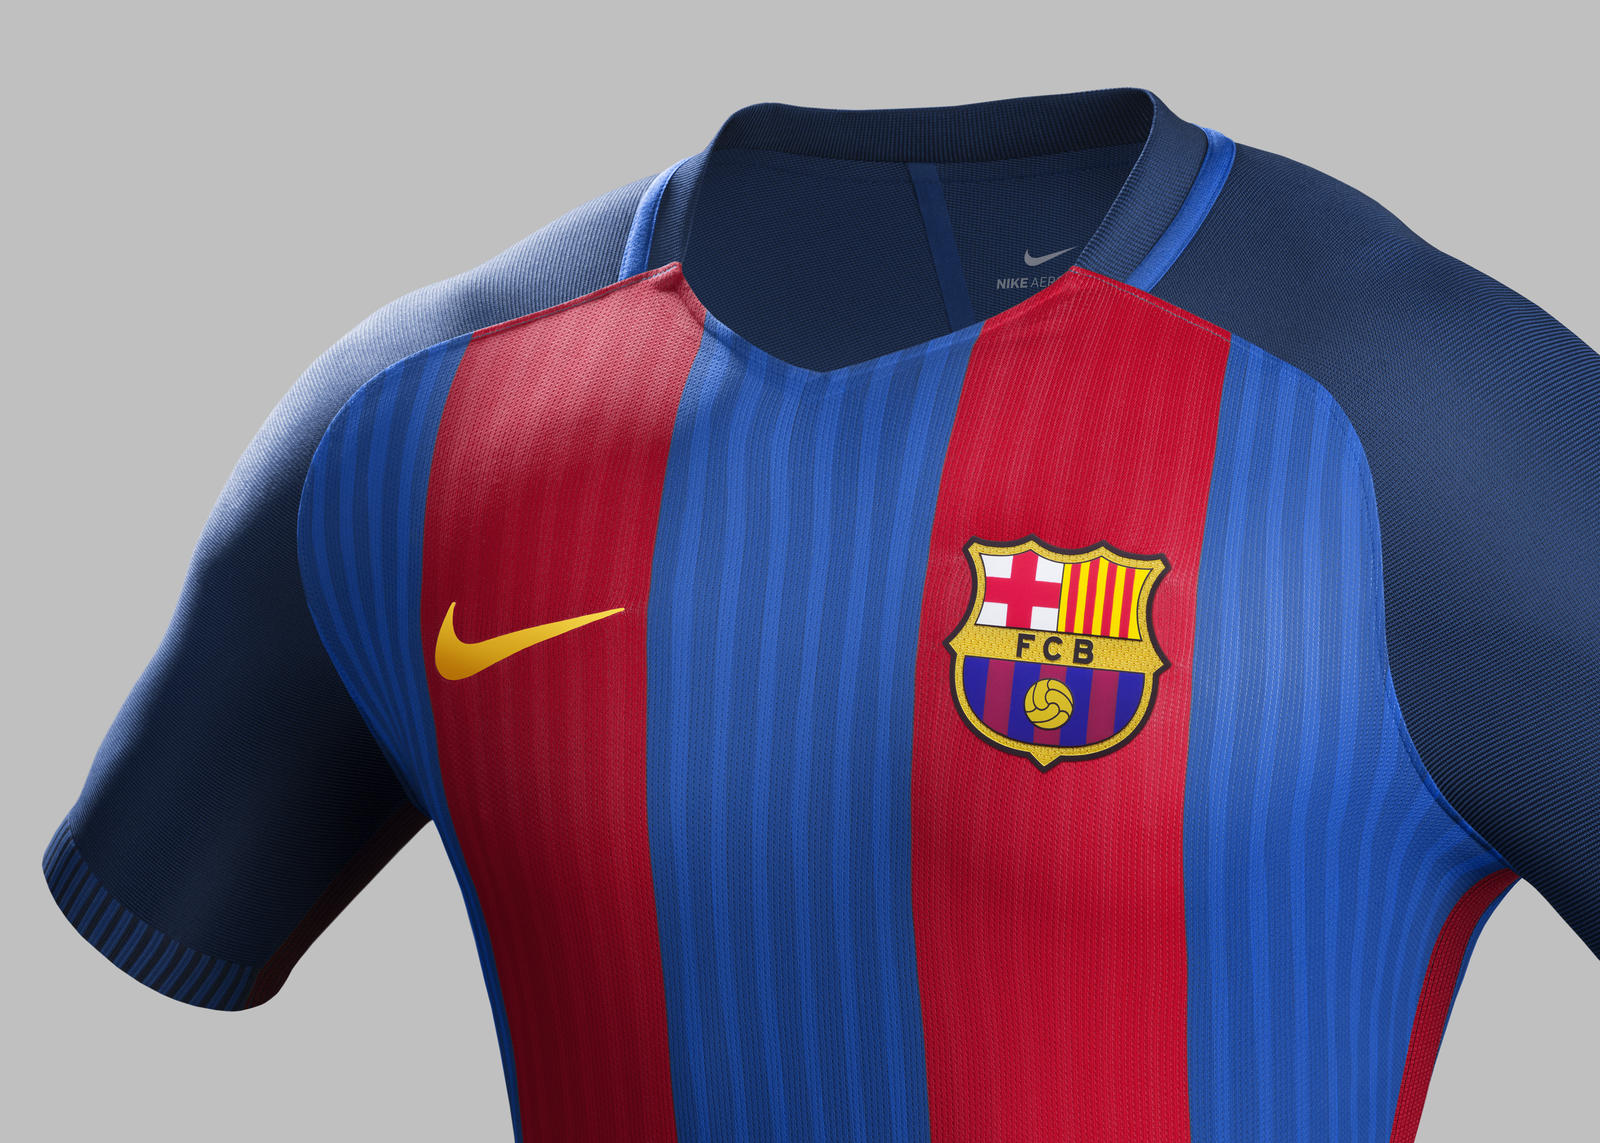 Barcelona Kits 2017-2018 Wallpapers - WallpaperSafari c99fe74a685e9